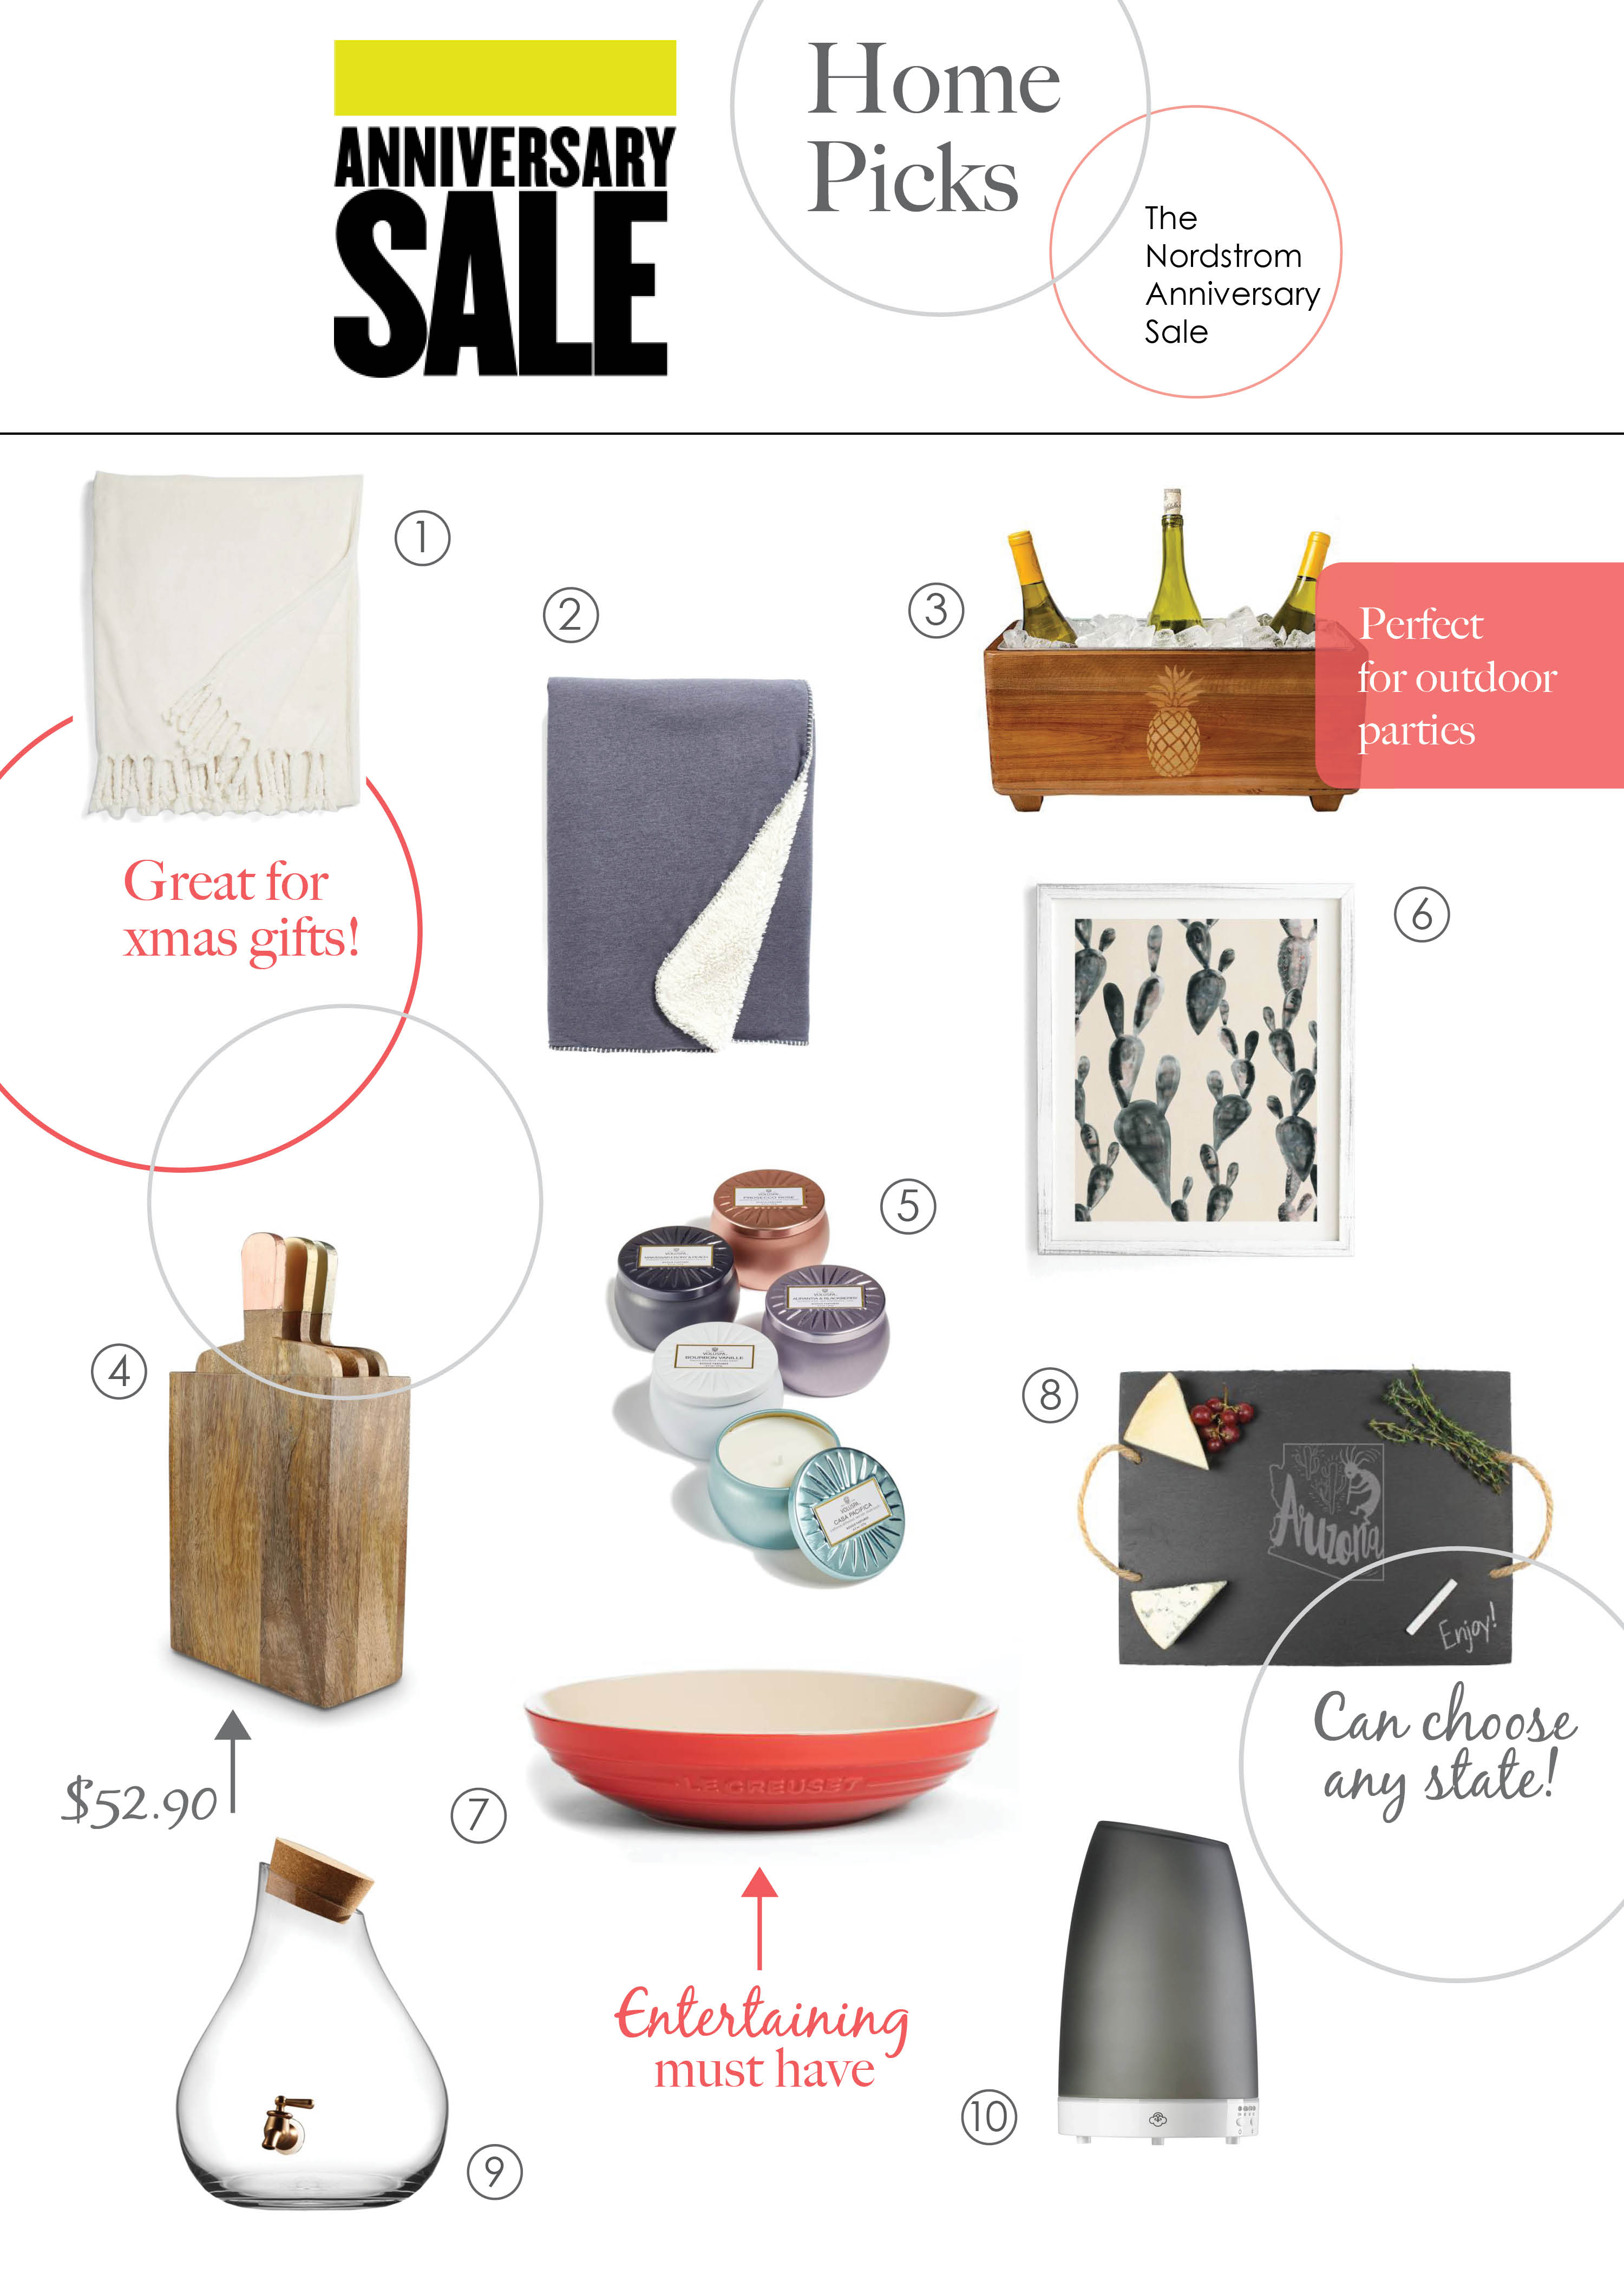 Nordstrom Anniversary Sale - Home Picks